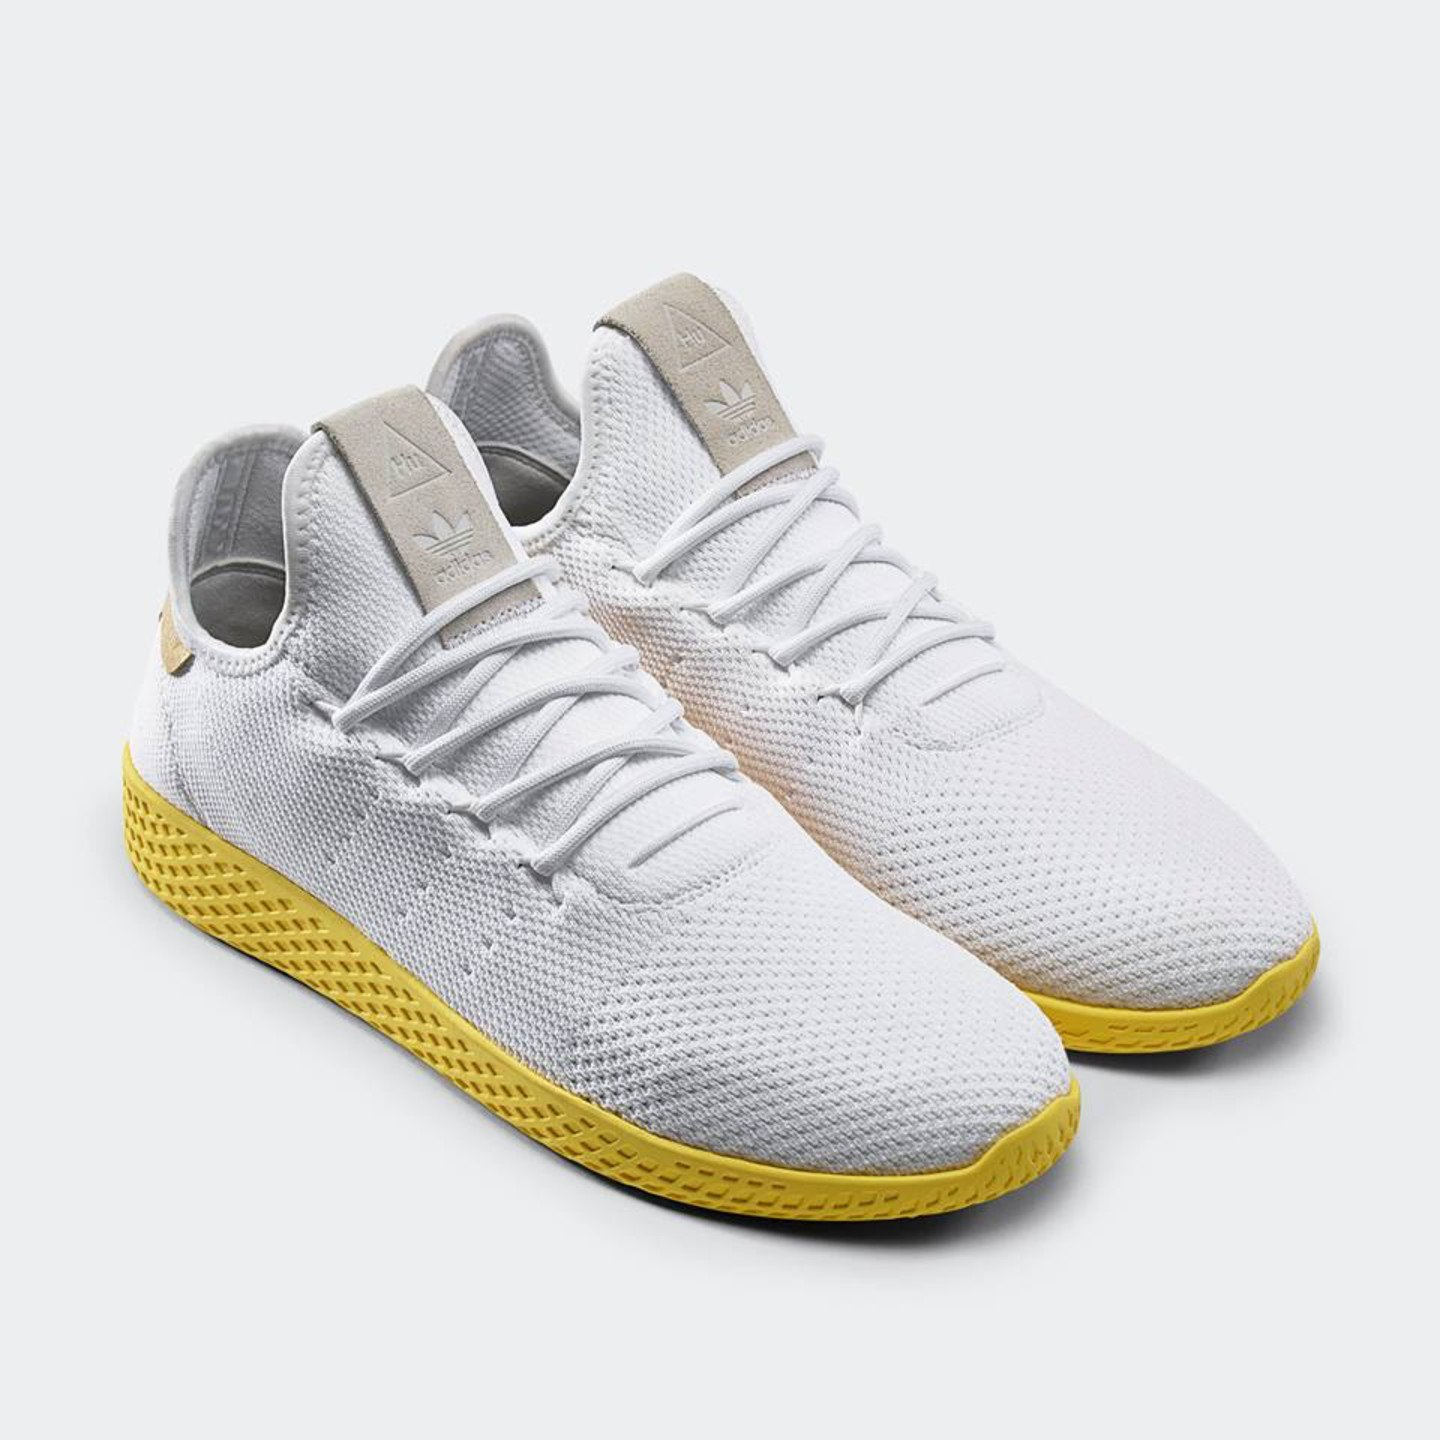 Adidas PW Tennis HU Ftwwht / Yellow / Gold BY2674